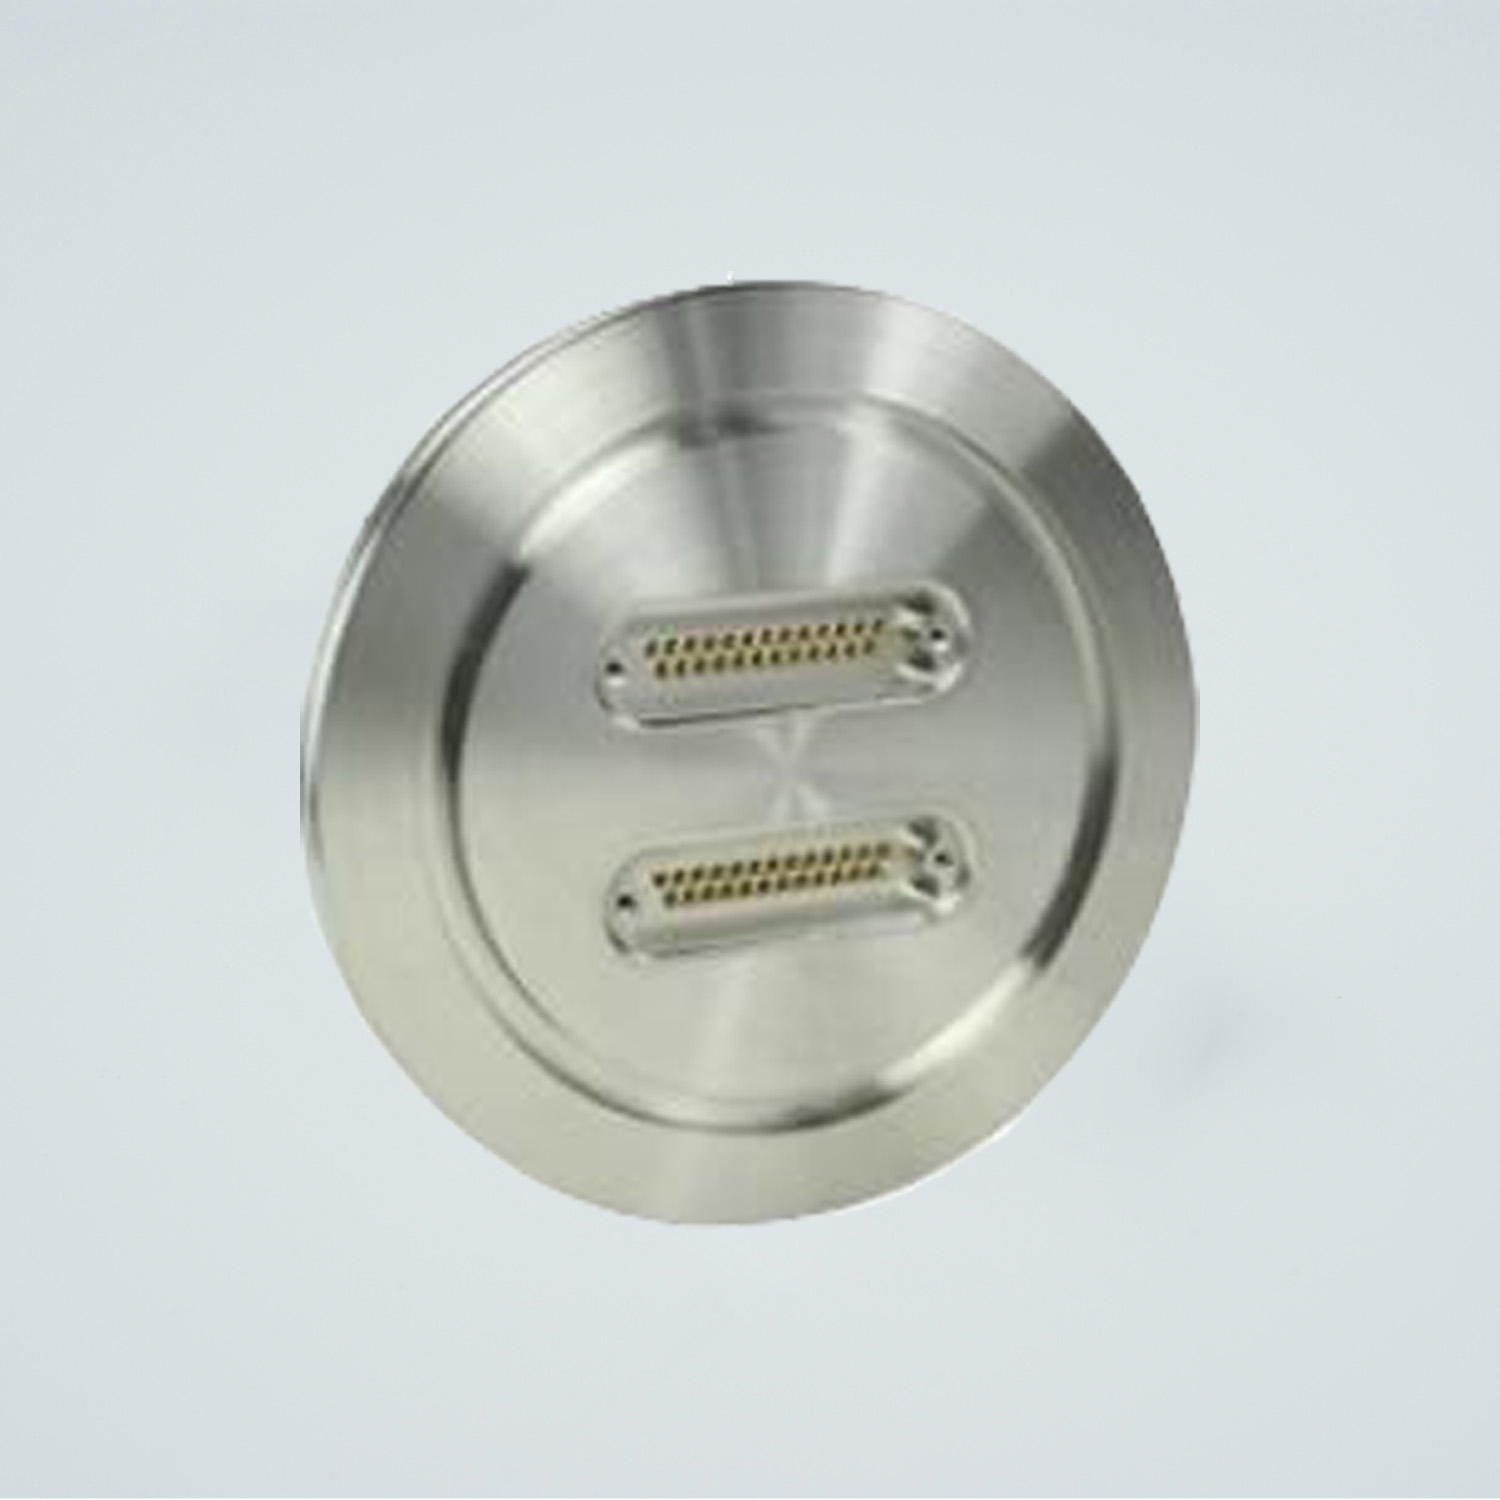 D-type subminiature feedthrough two-25-pin on DN100ISO flange